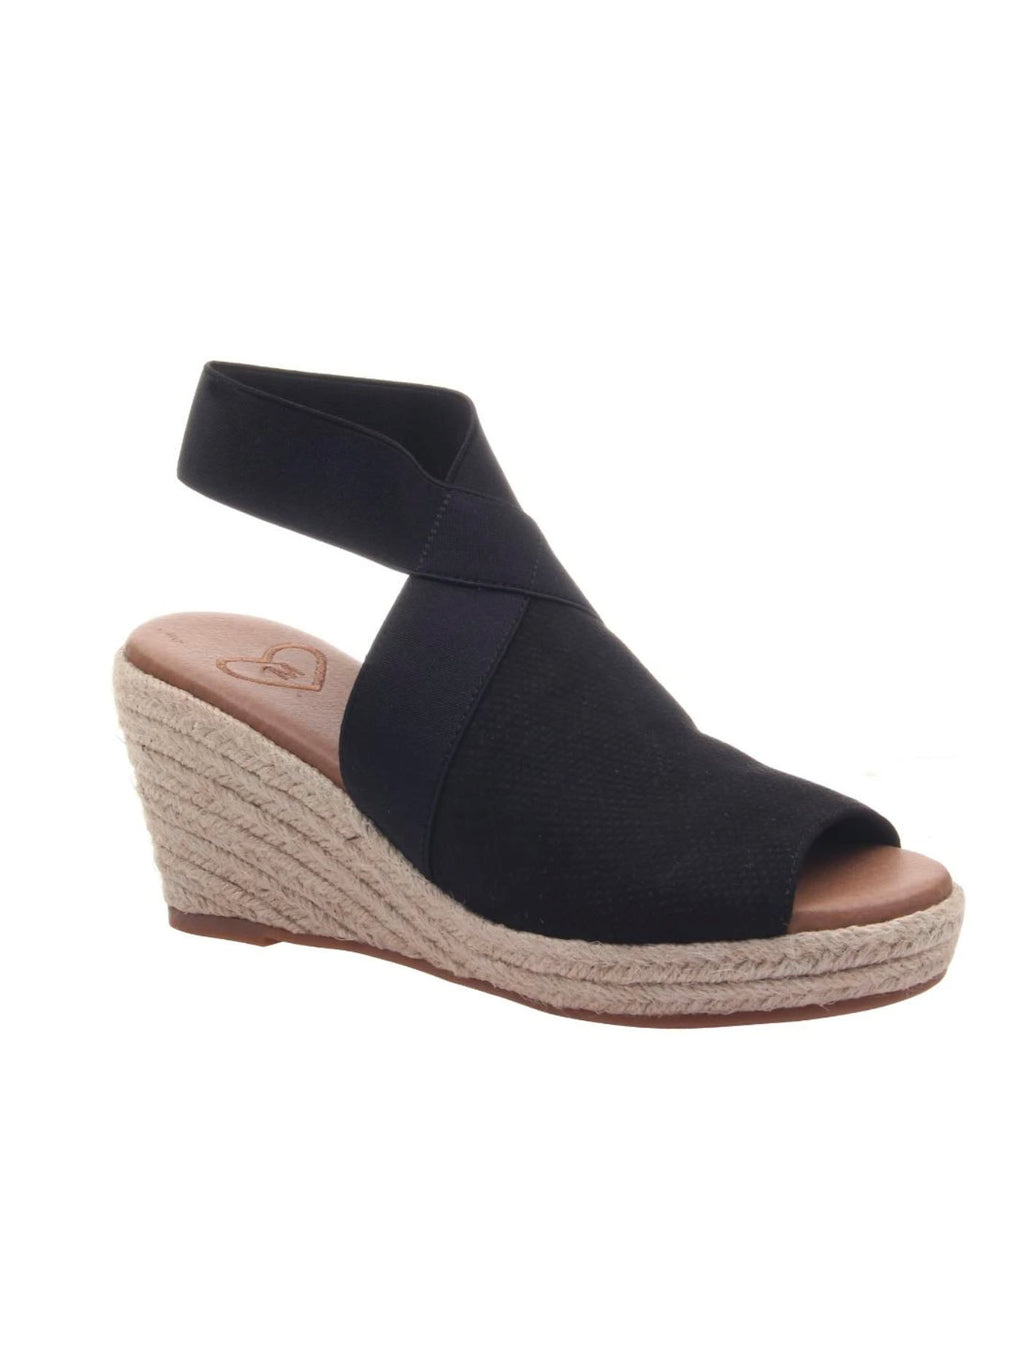 Madeline Girl Sunny Day Wedge in Black